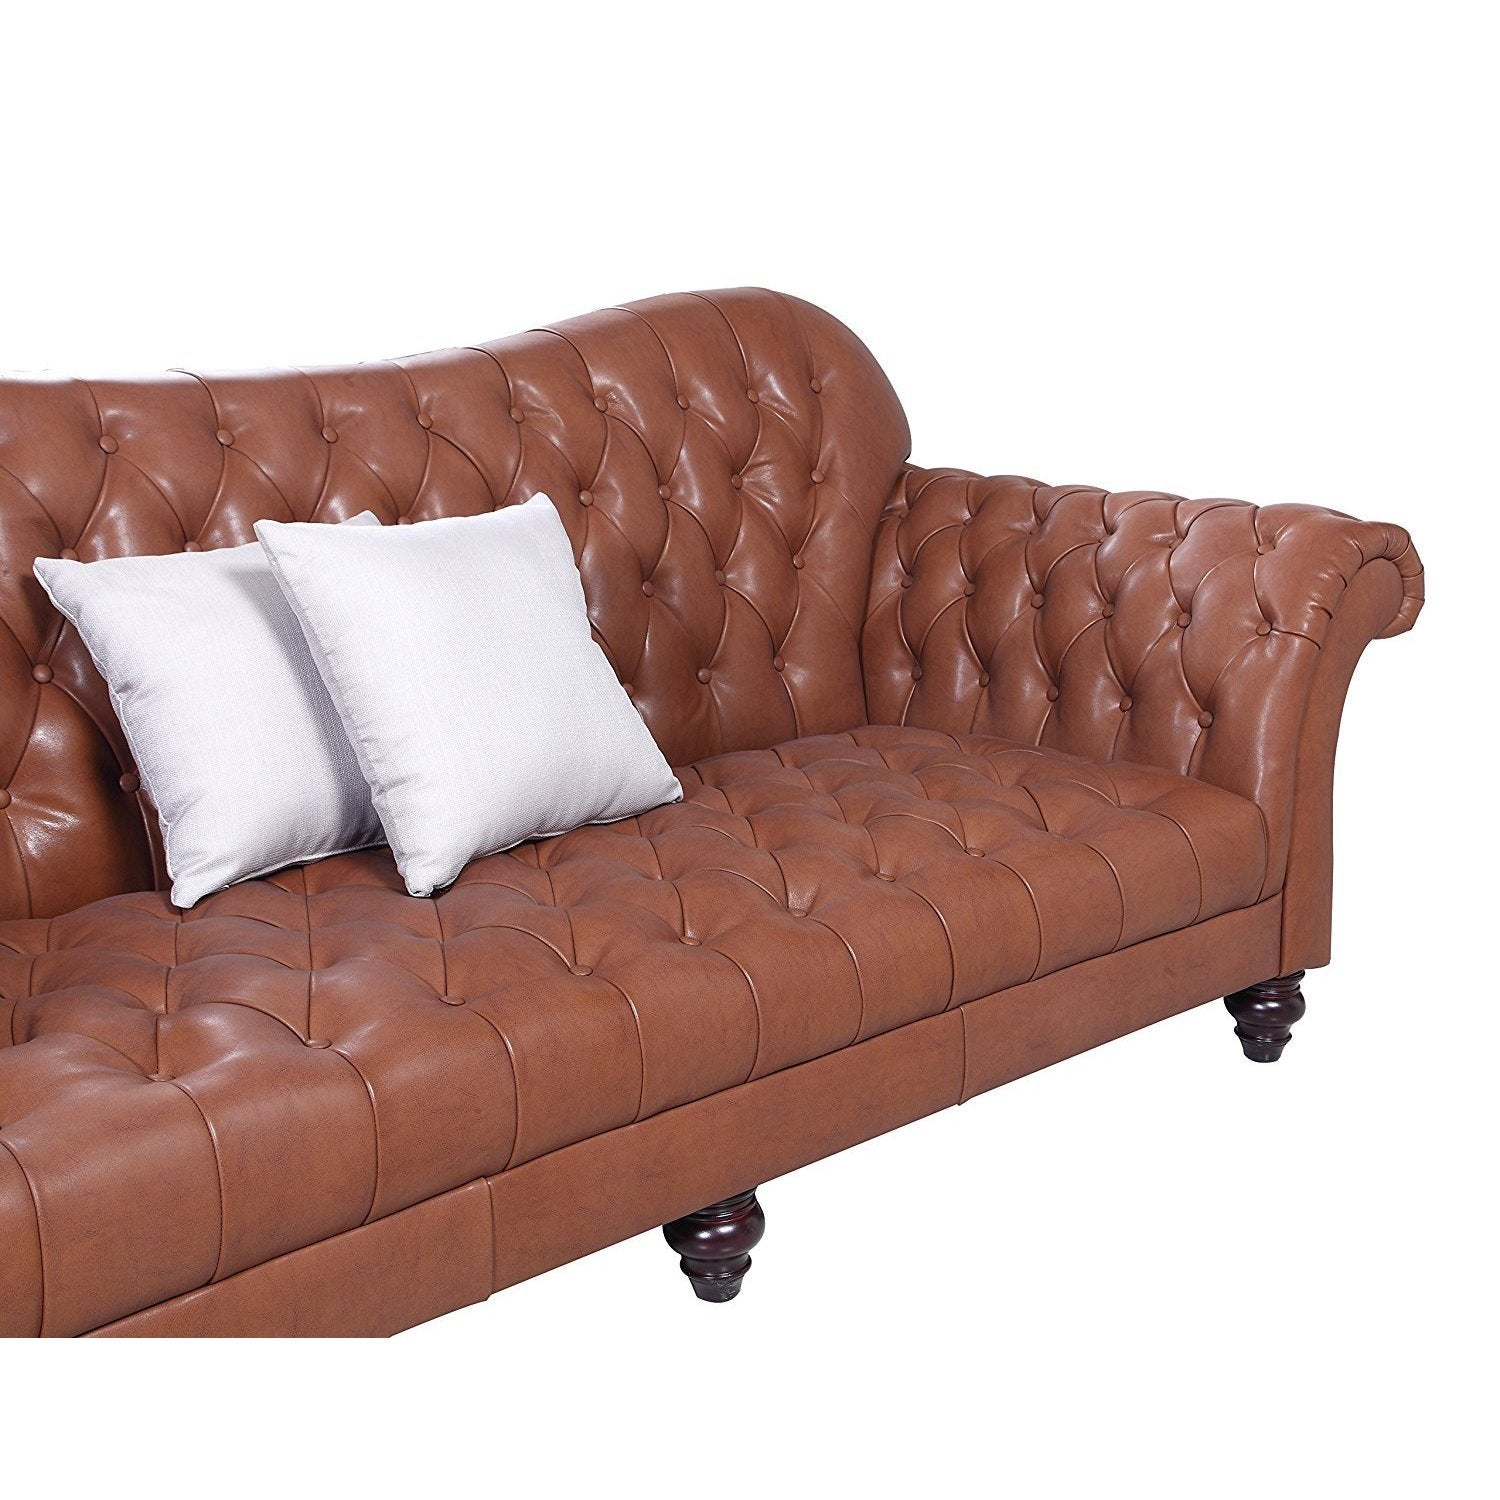 Classic Tufted Real Italian Leather Tufted Victorian Sofa   Free Shipping  Today   Overstock   21236711